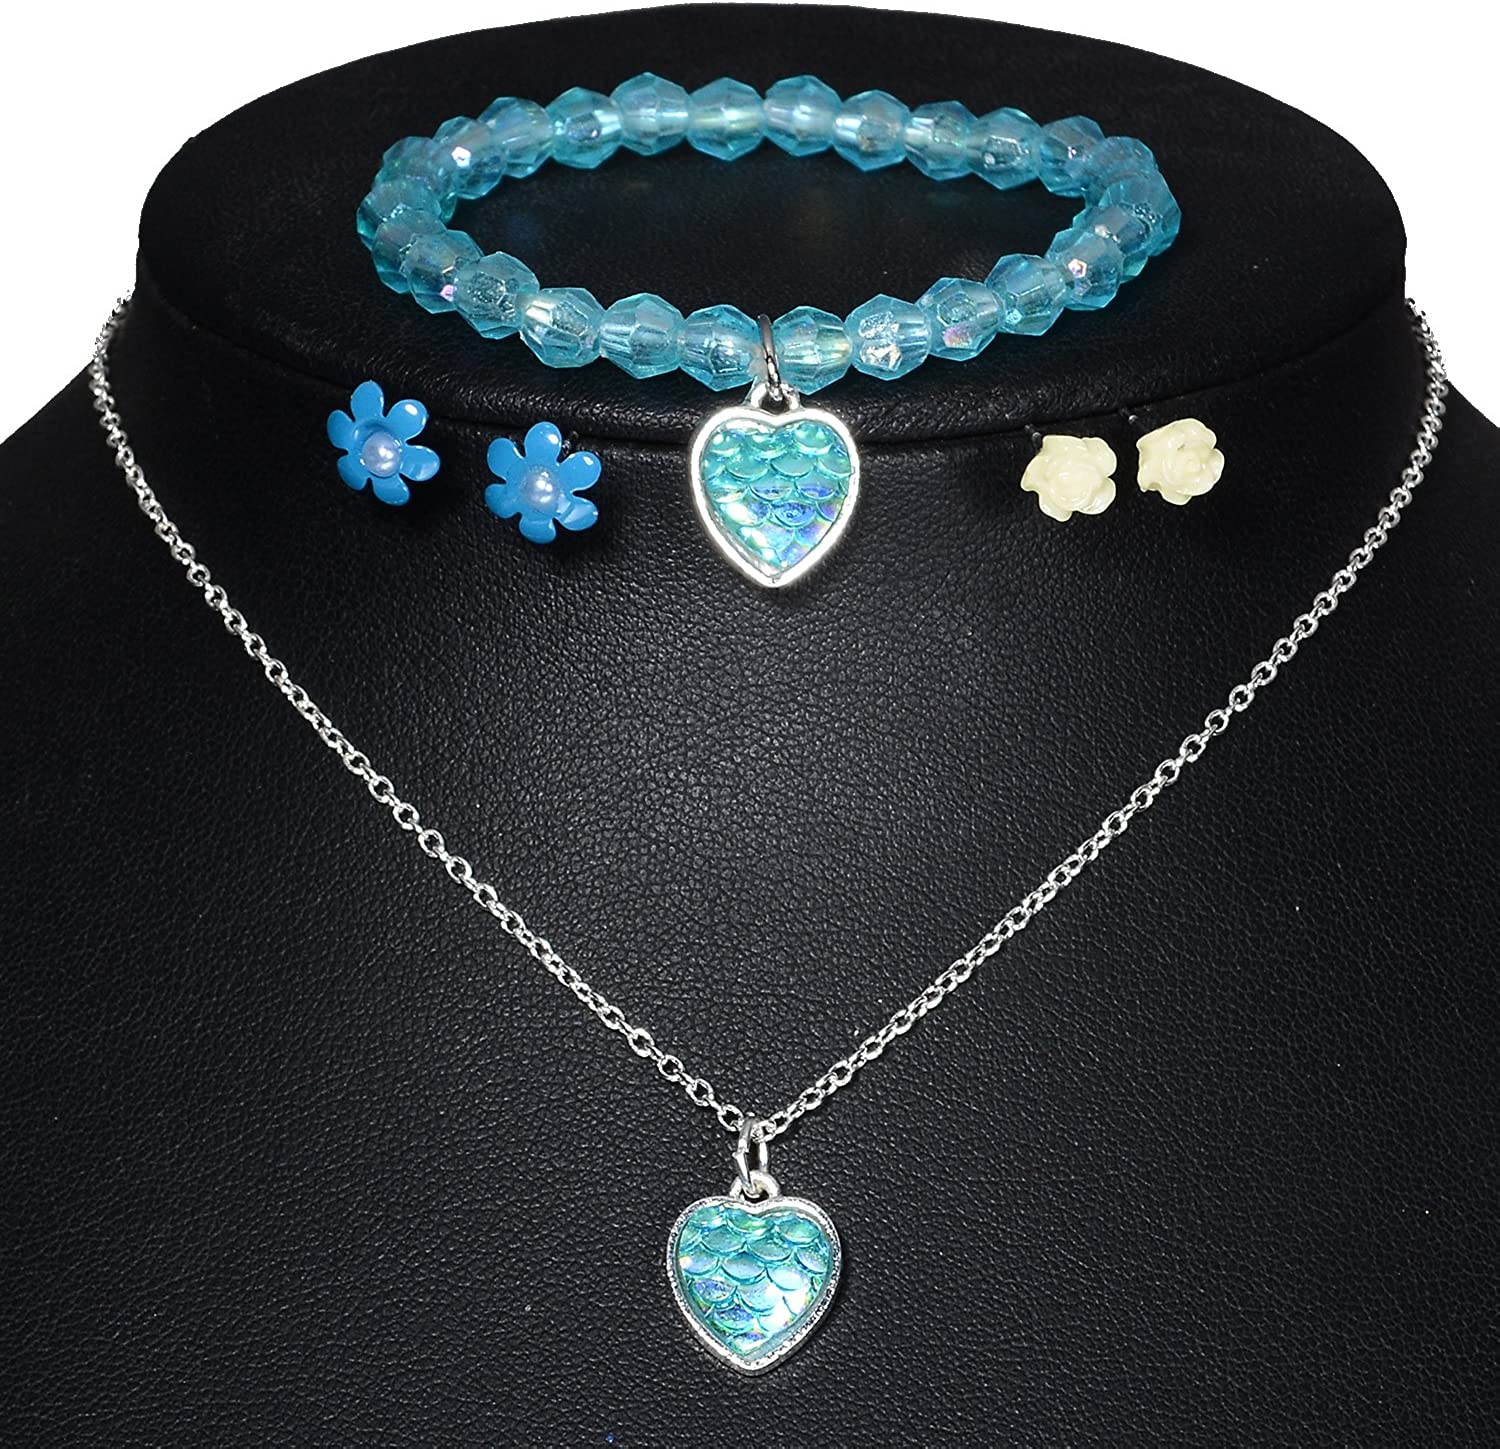 Jewels Obsession #1 Grandma Necklace Rhodium-plated 925 Silver #1 Grandma Pendant with 24 Necklace